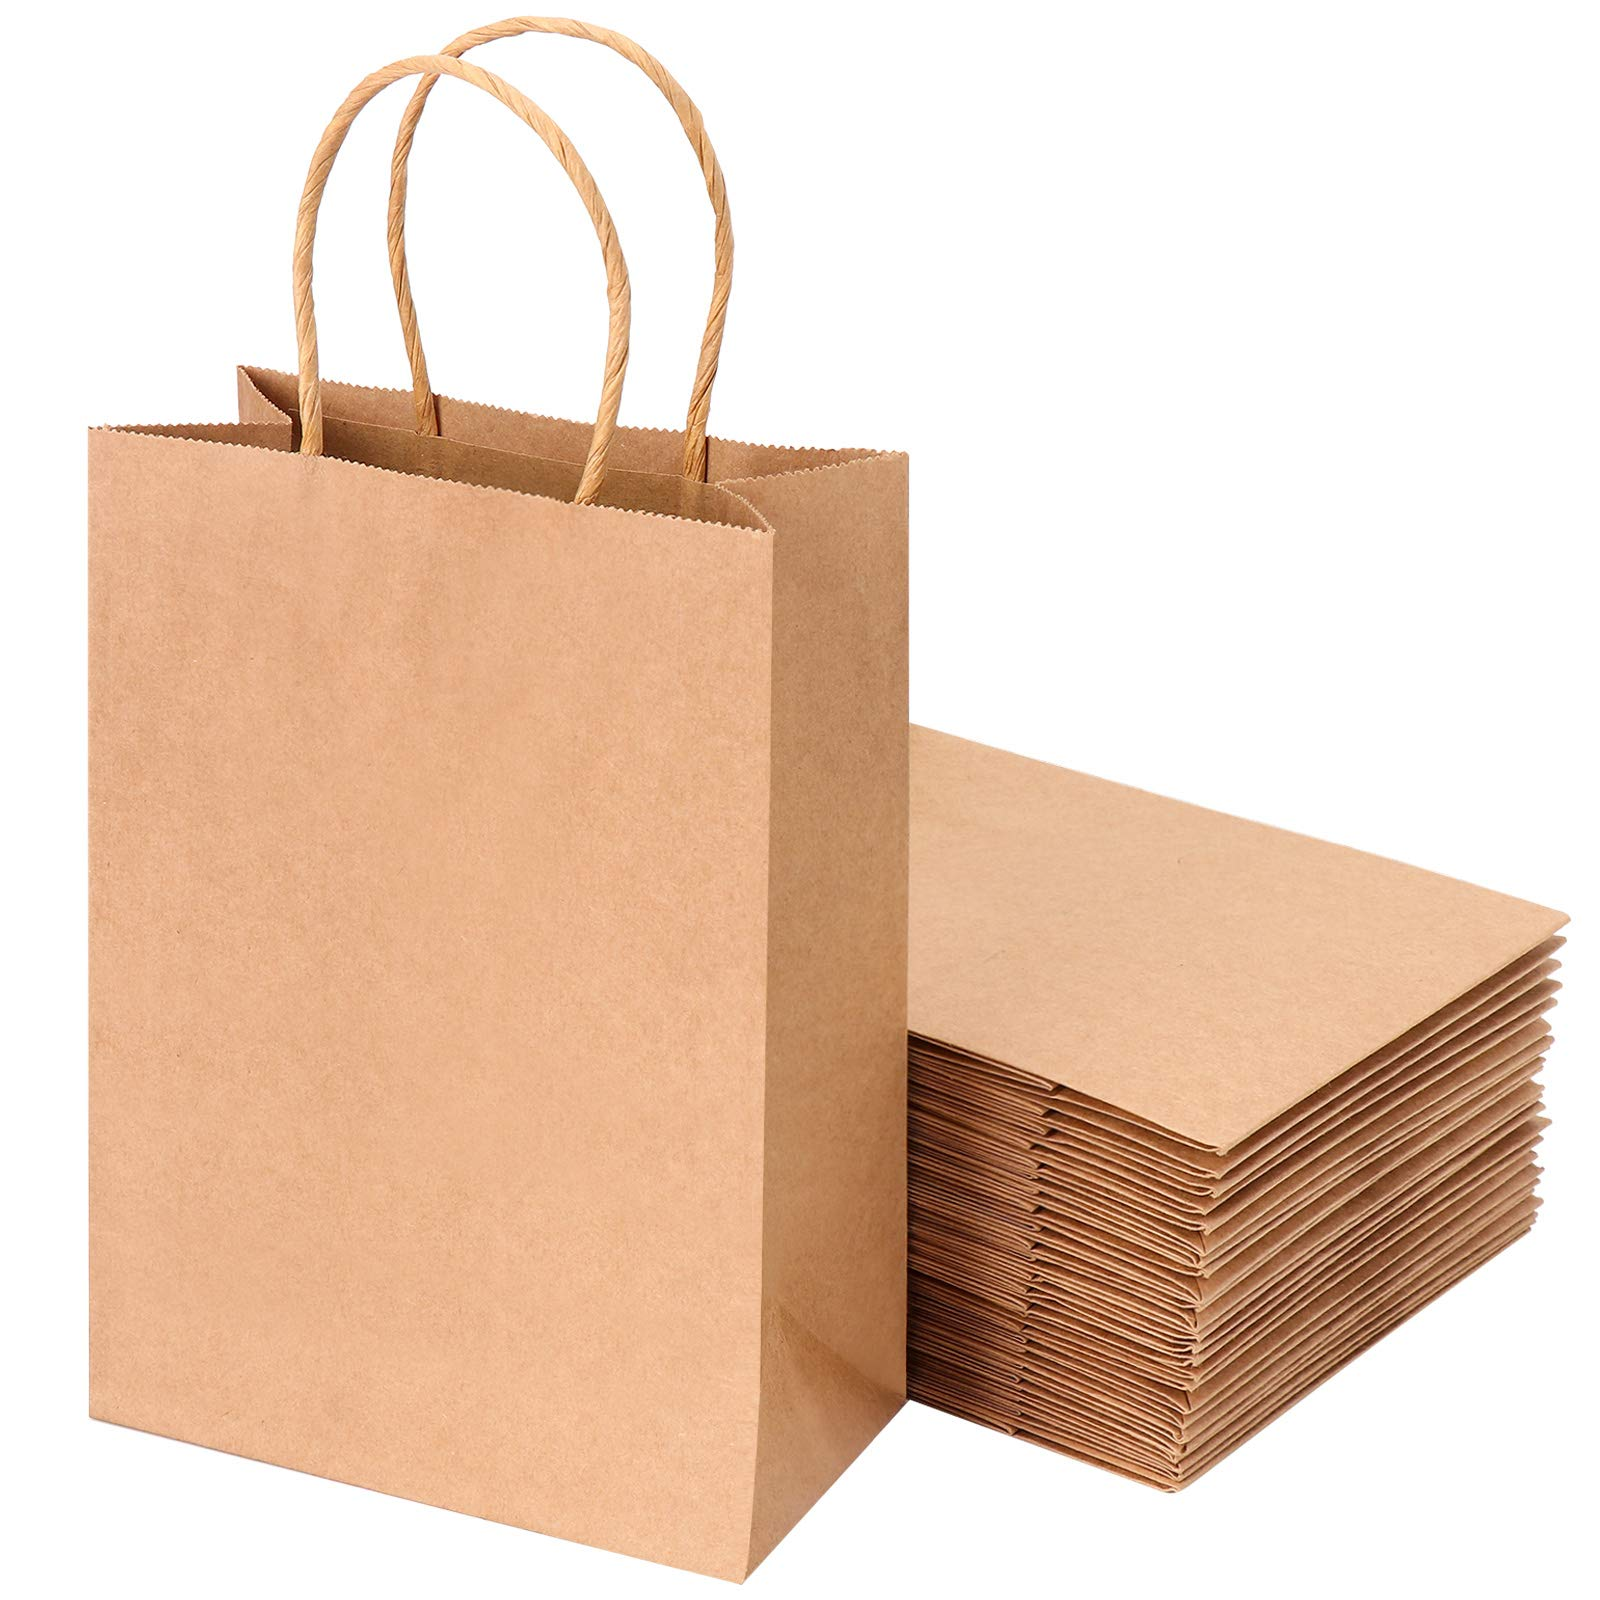 Brown Kraft Paper Bags with Handles - 27pcs Small Paper Gift Bags Bulk, Shopping Bags, Retail Bags, Party Bags, Favor Bags, Kraft Bags, Recycled Paper Bags for Business 5.7 x 3.14 x 8.26 Inches